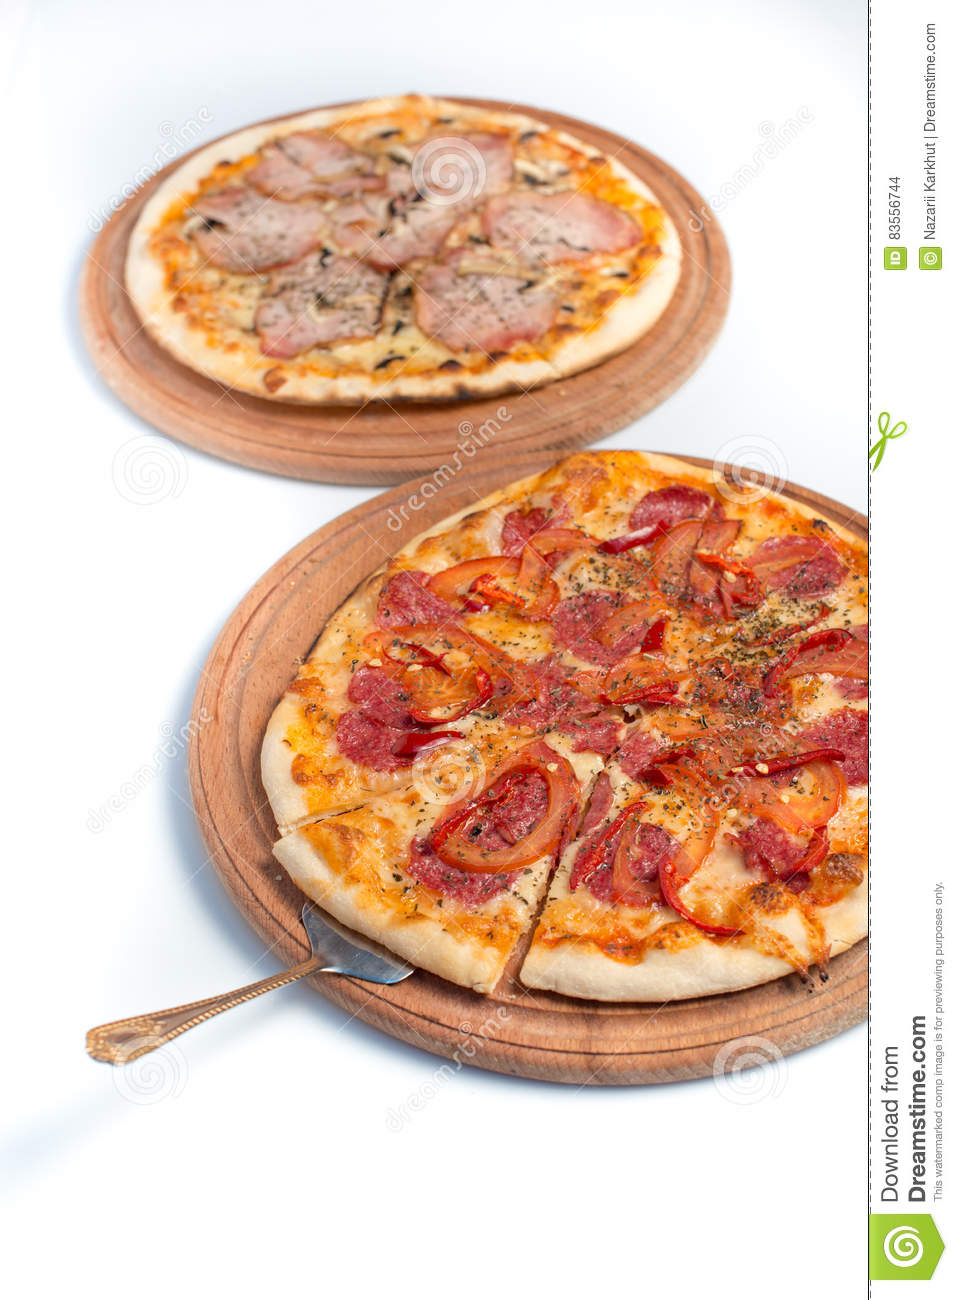 Big appetizing pizza on a wooden tablet